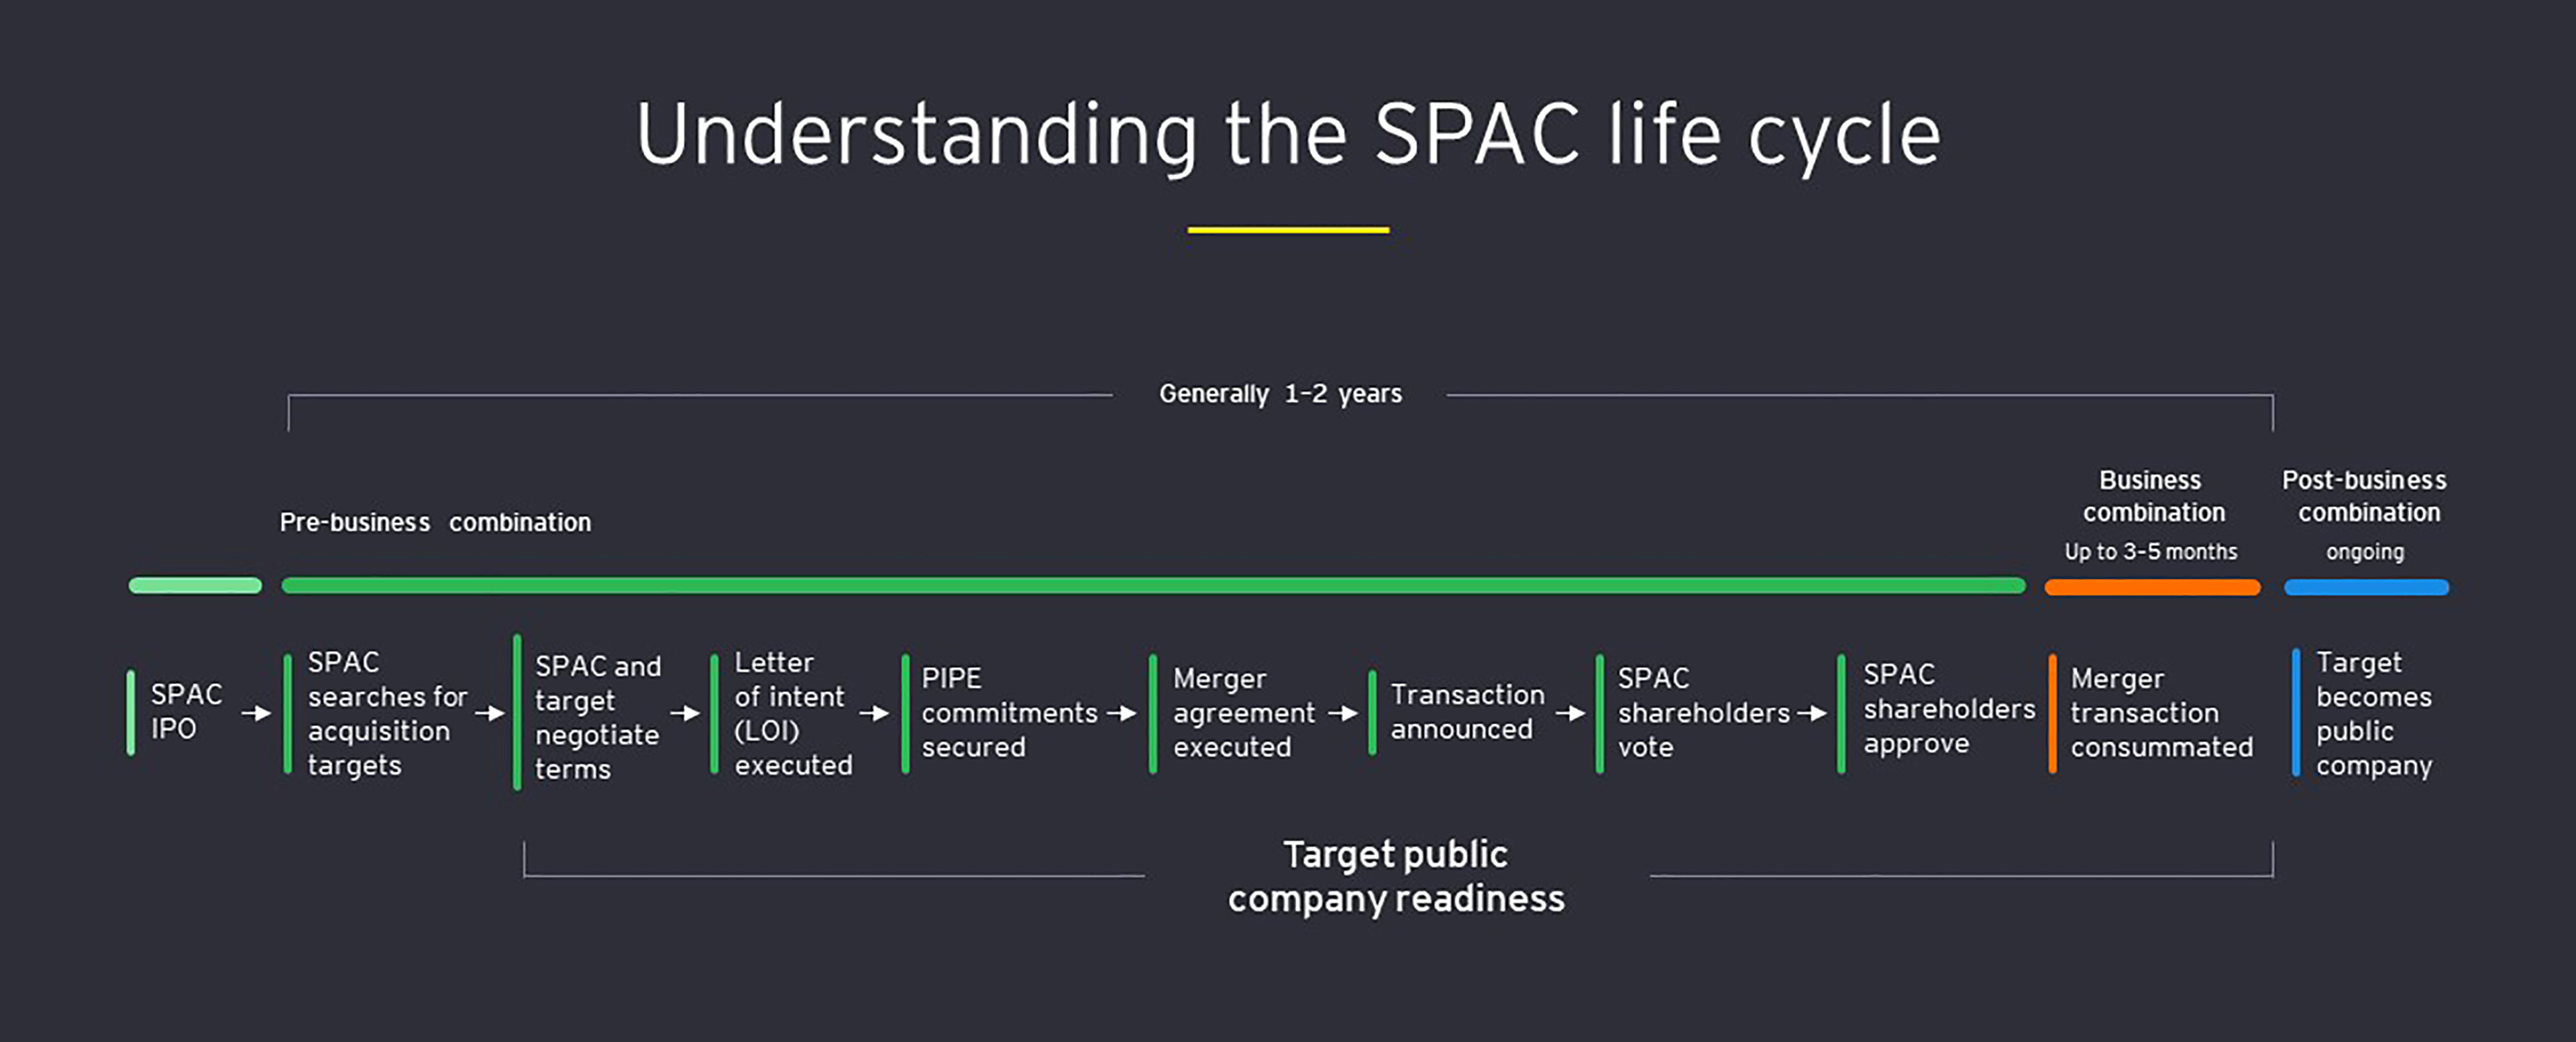 EY - Understanding the SPAC life cycle